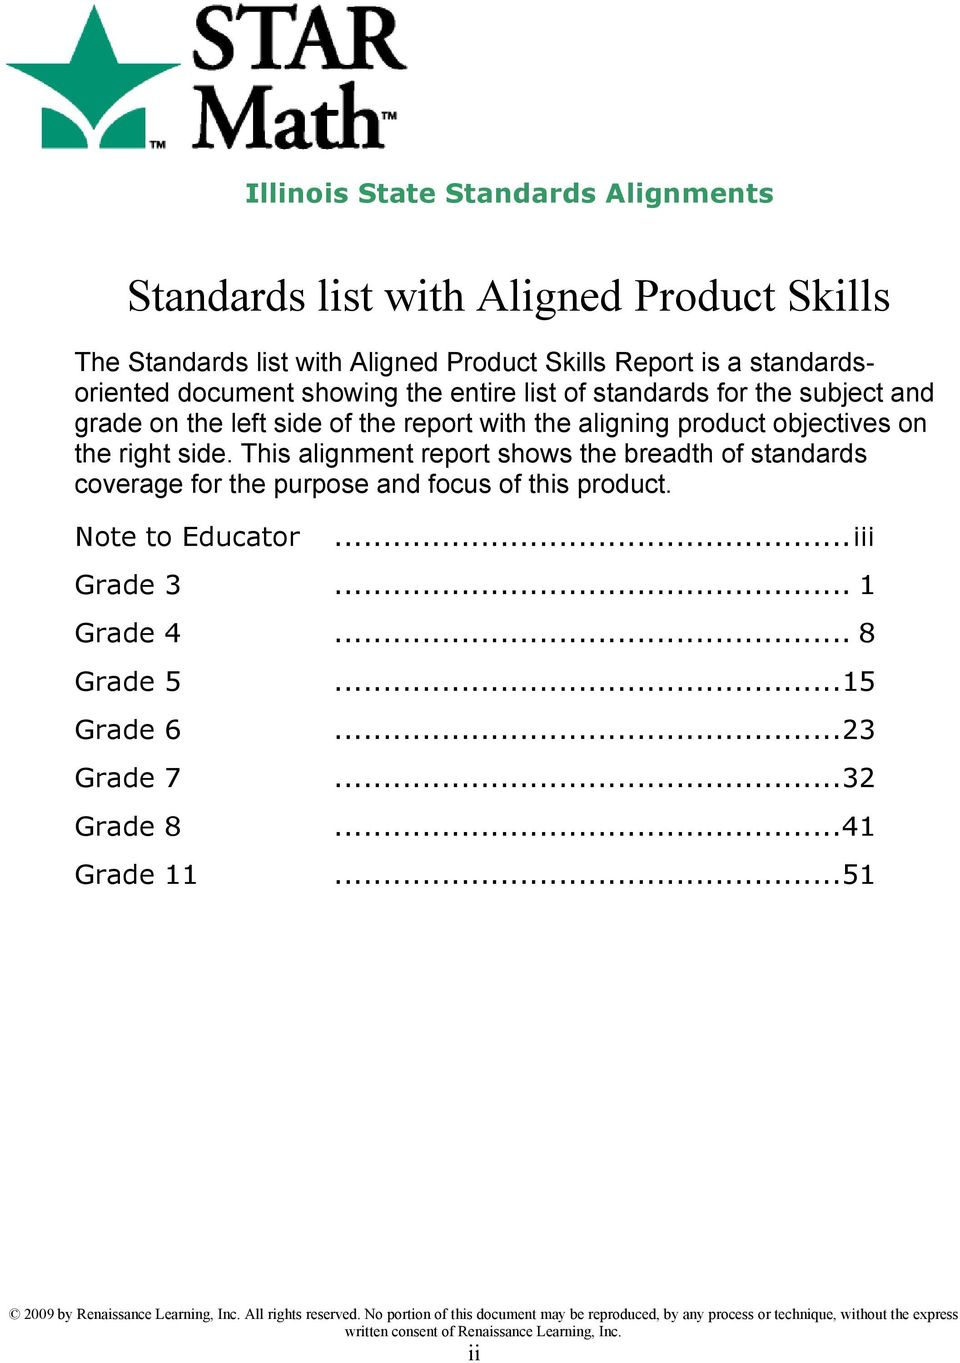 This alignment report shows the breadth of standards coverage for the purpose and focus of this product. Note to Educator...iii Grade 3... 1 Grade 4... 8 Grade 5...15 Grade 6.